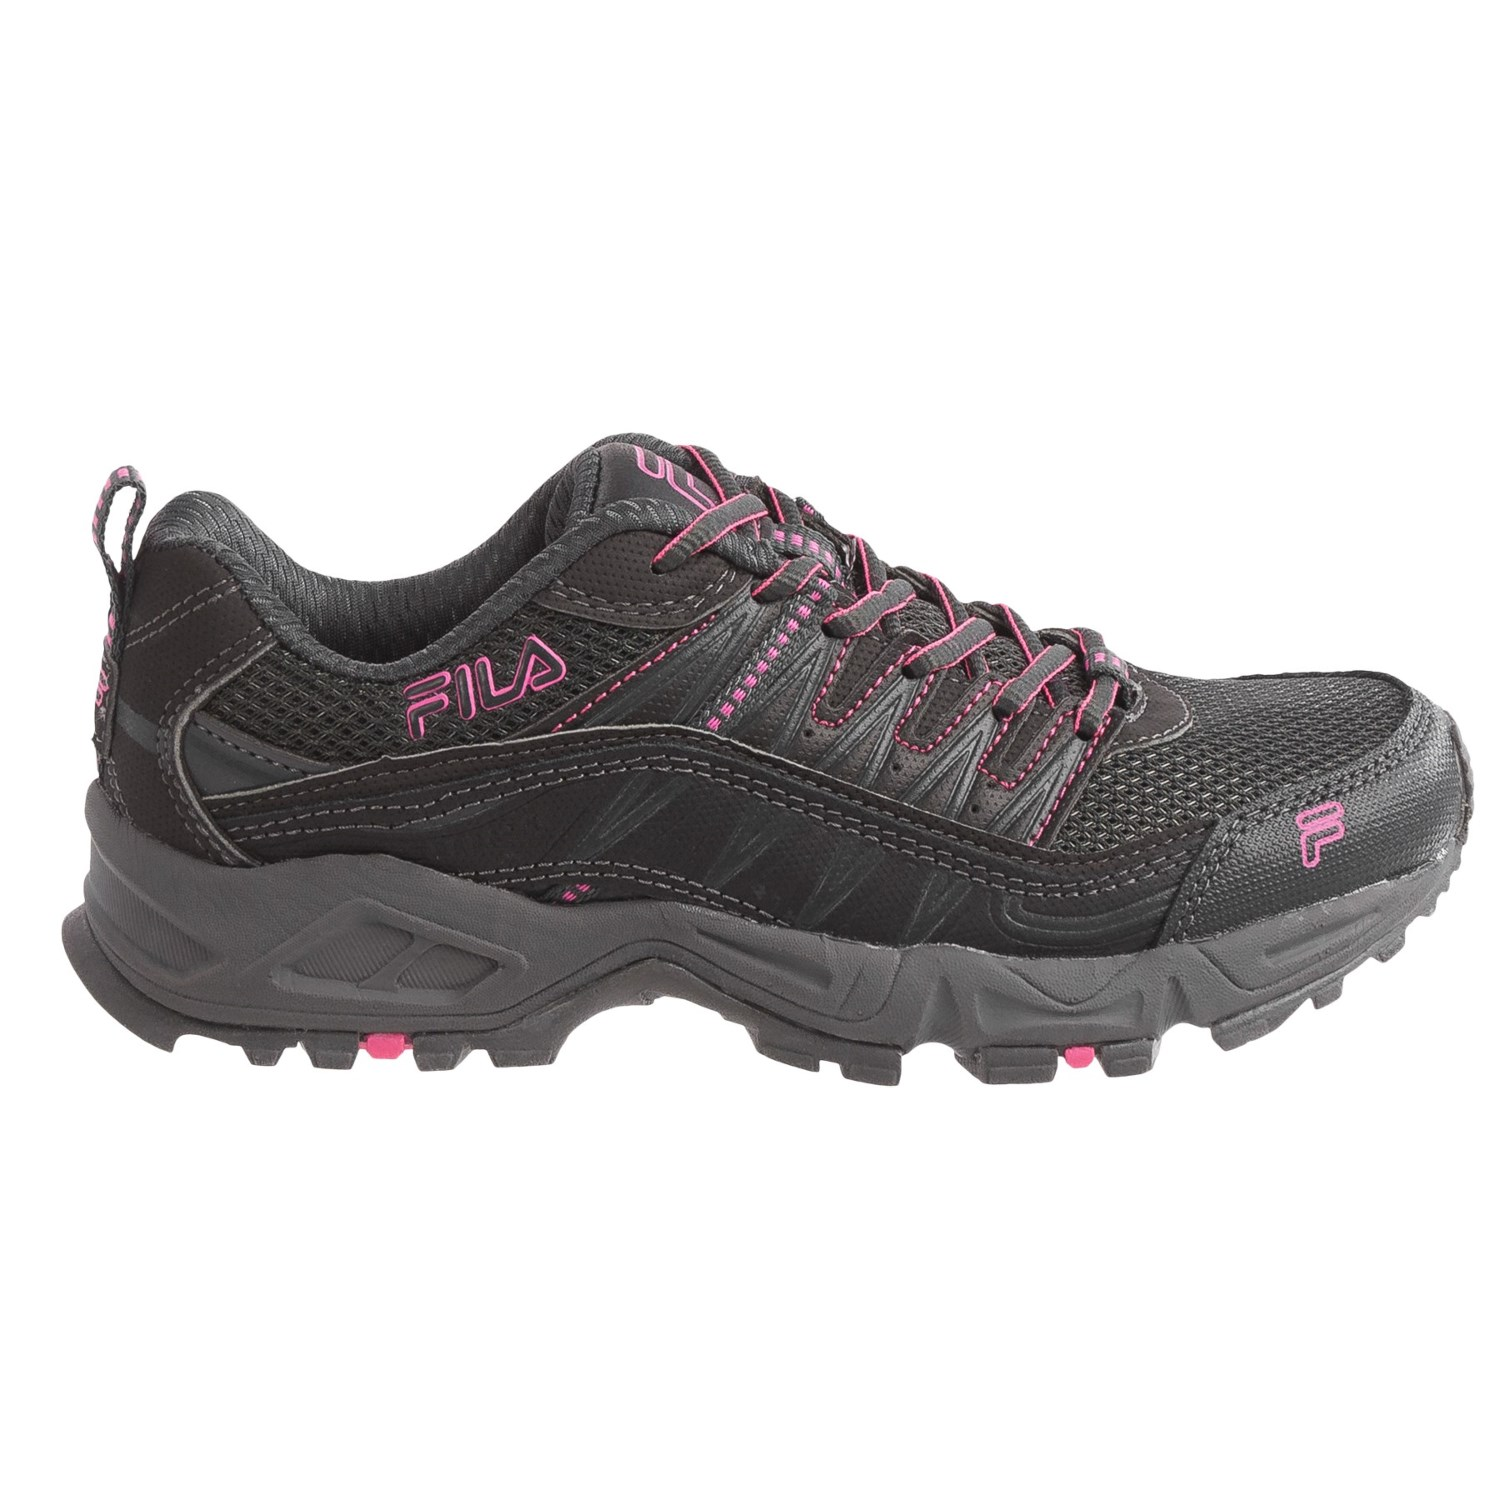 Where To Buy Trail Running Shoes